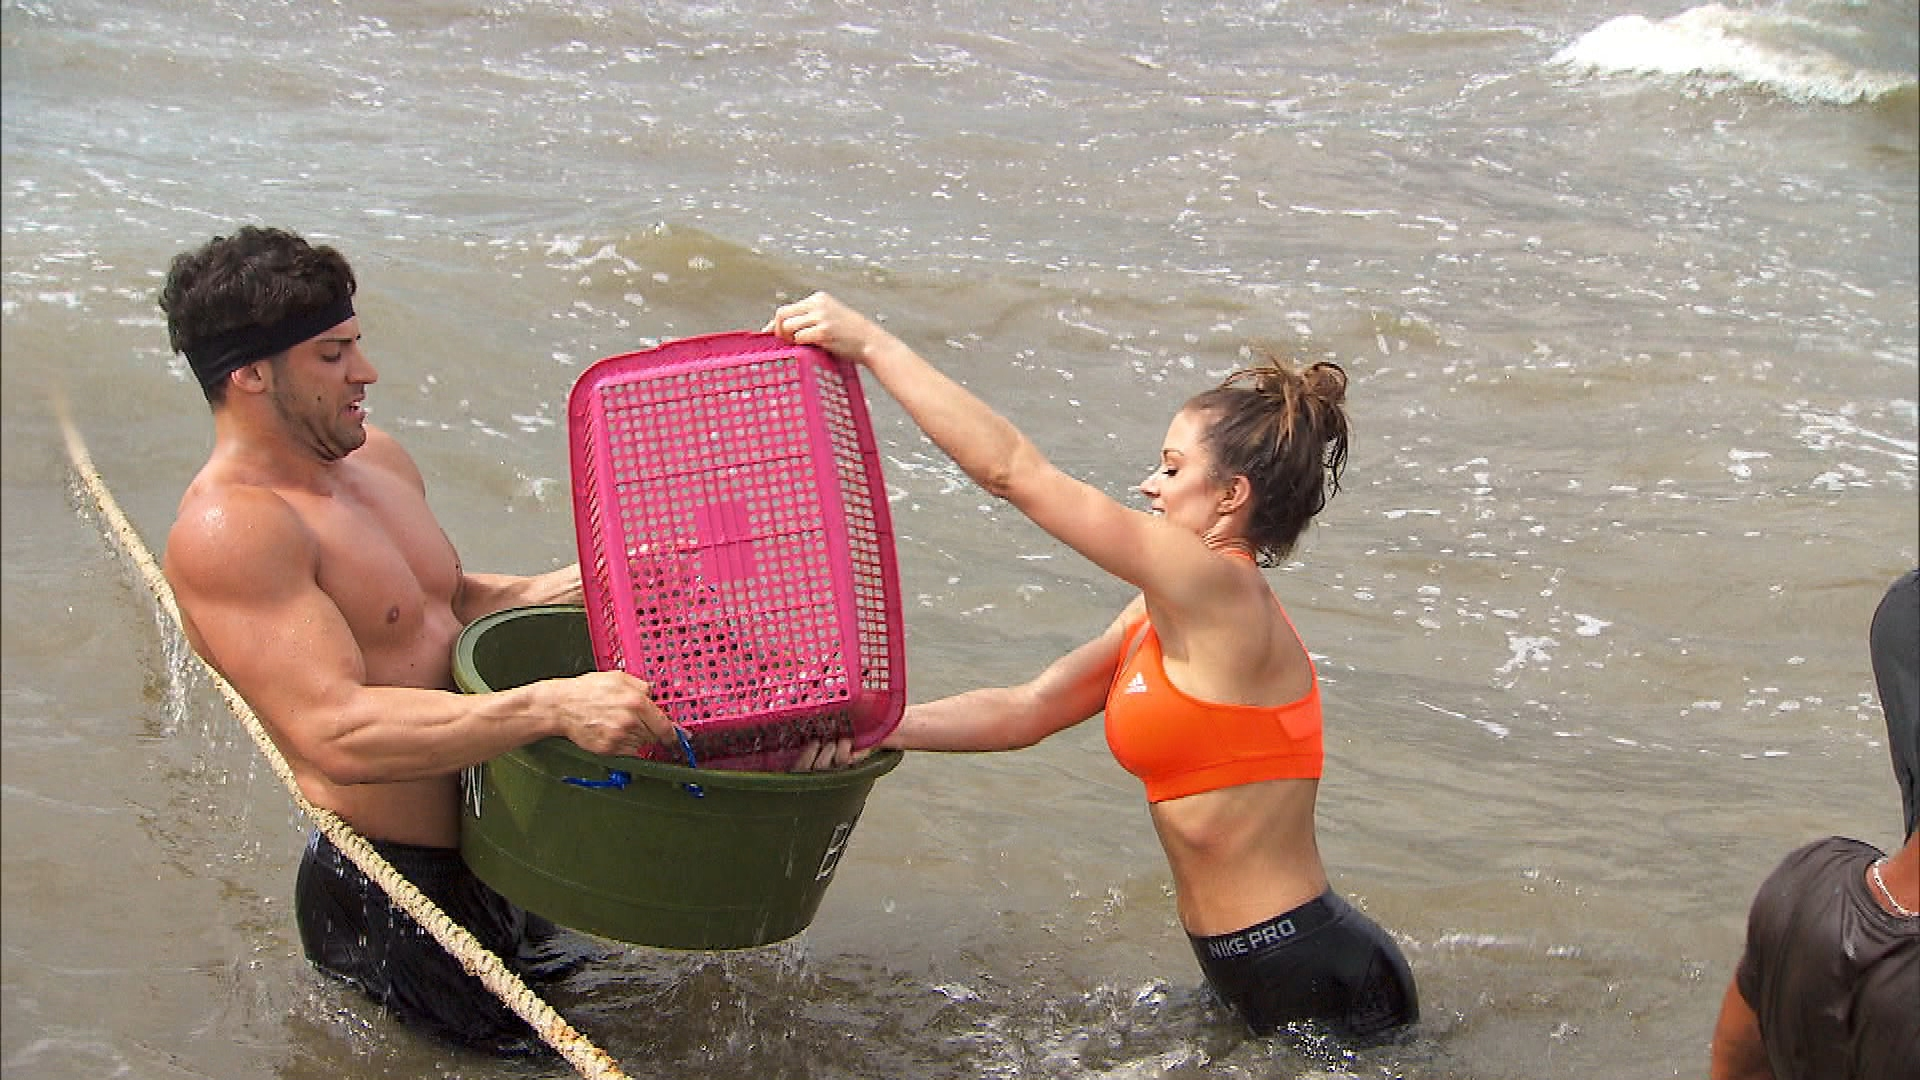 Carrying buckets of fish